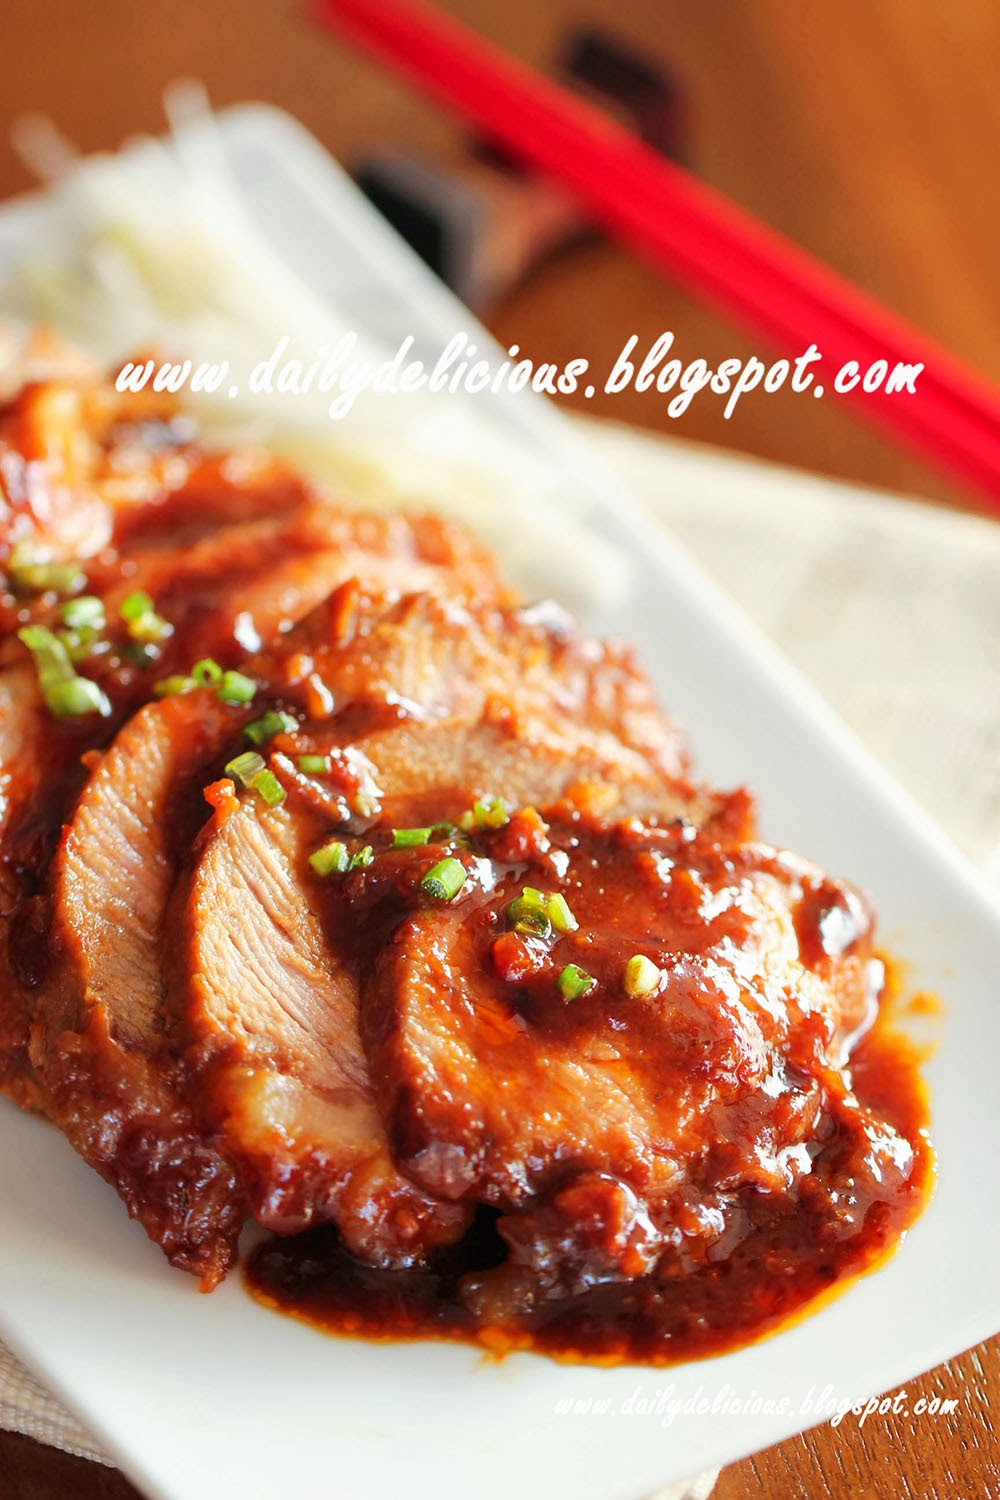 Dailydelicious easy cooking microwave japanese grill pork easy cooking microwave japanese grill pork forumfinder Image collections